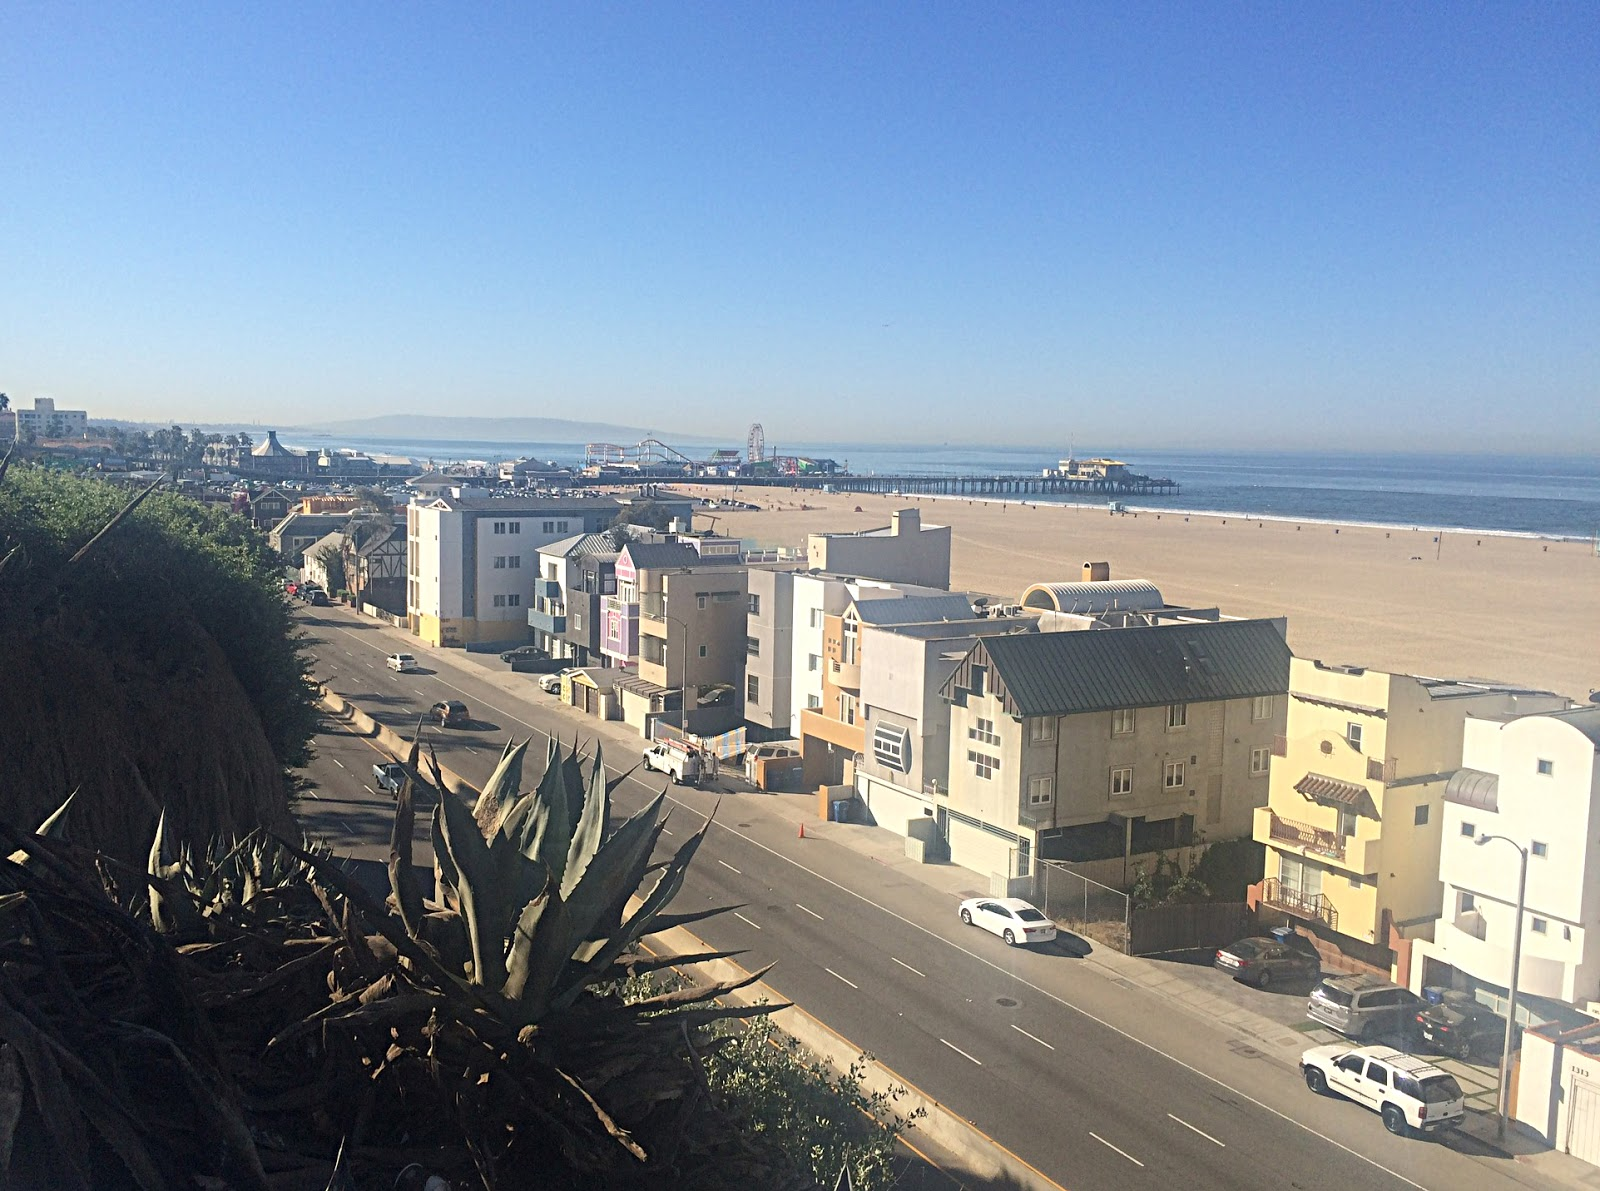 Los Angeles - Santa Monica Beach View